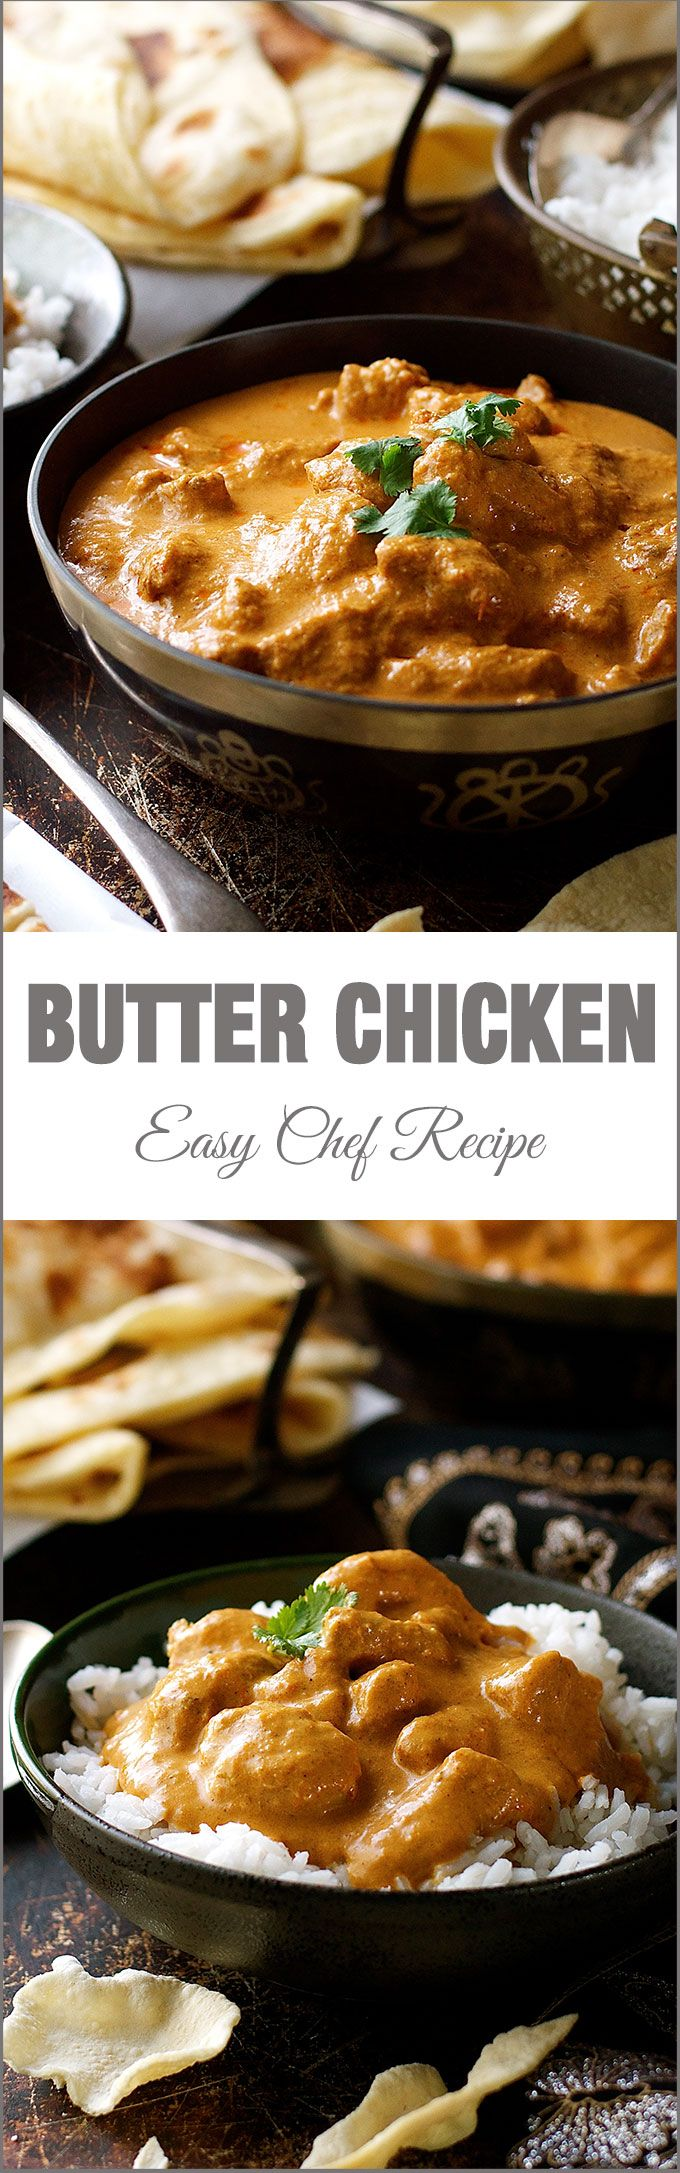 Simple Butter Chicken - a chef recipe